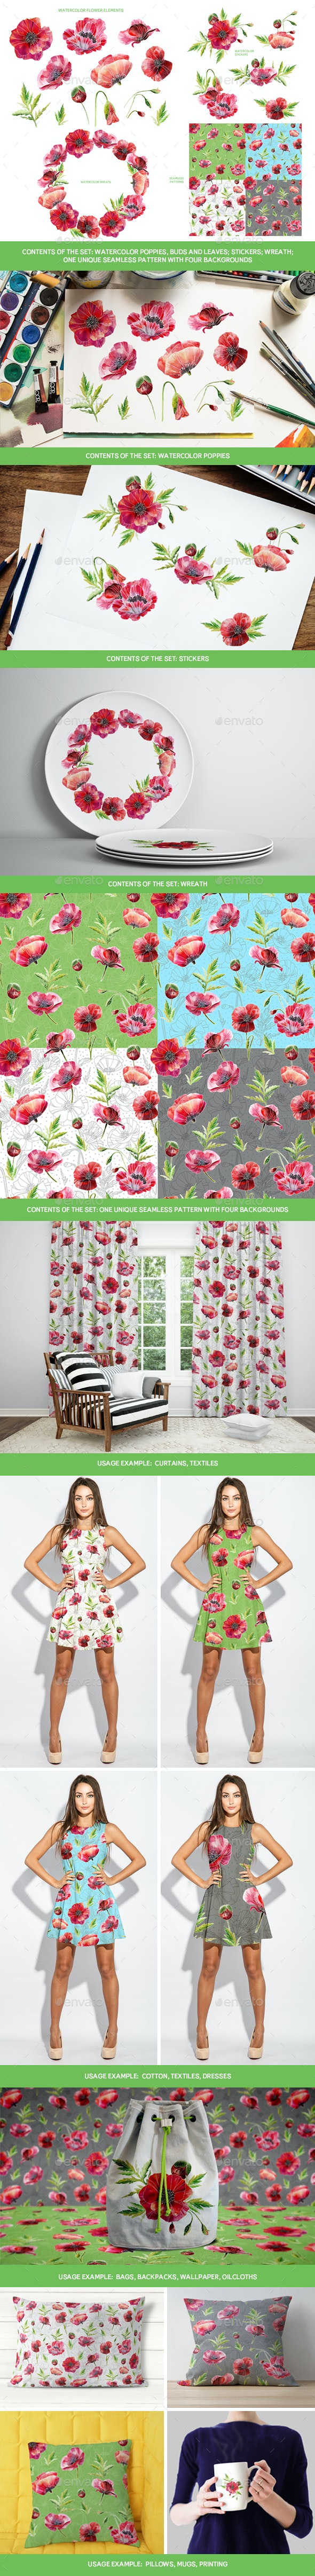 Set of the Poppies: Watercolor Flowers, Wreath, Stickers and Seamless Patterns